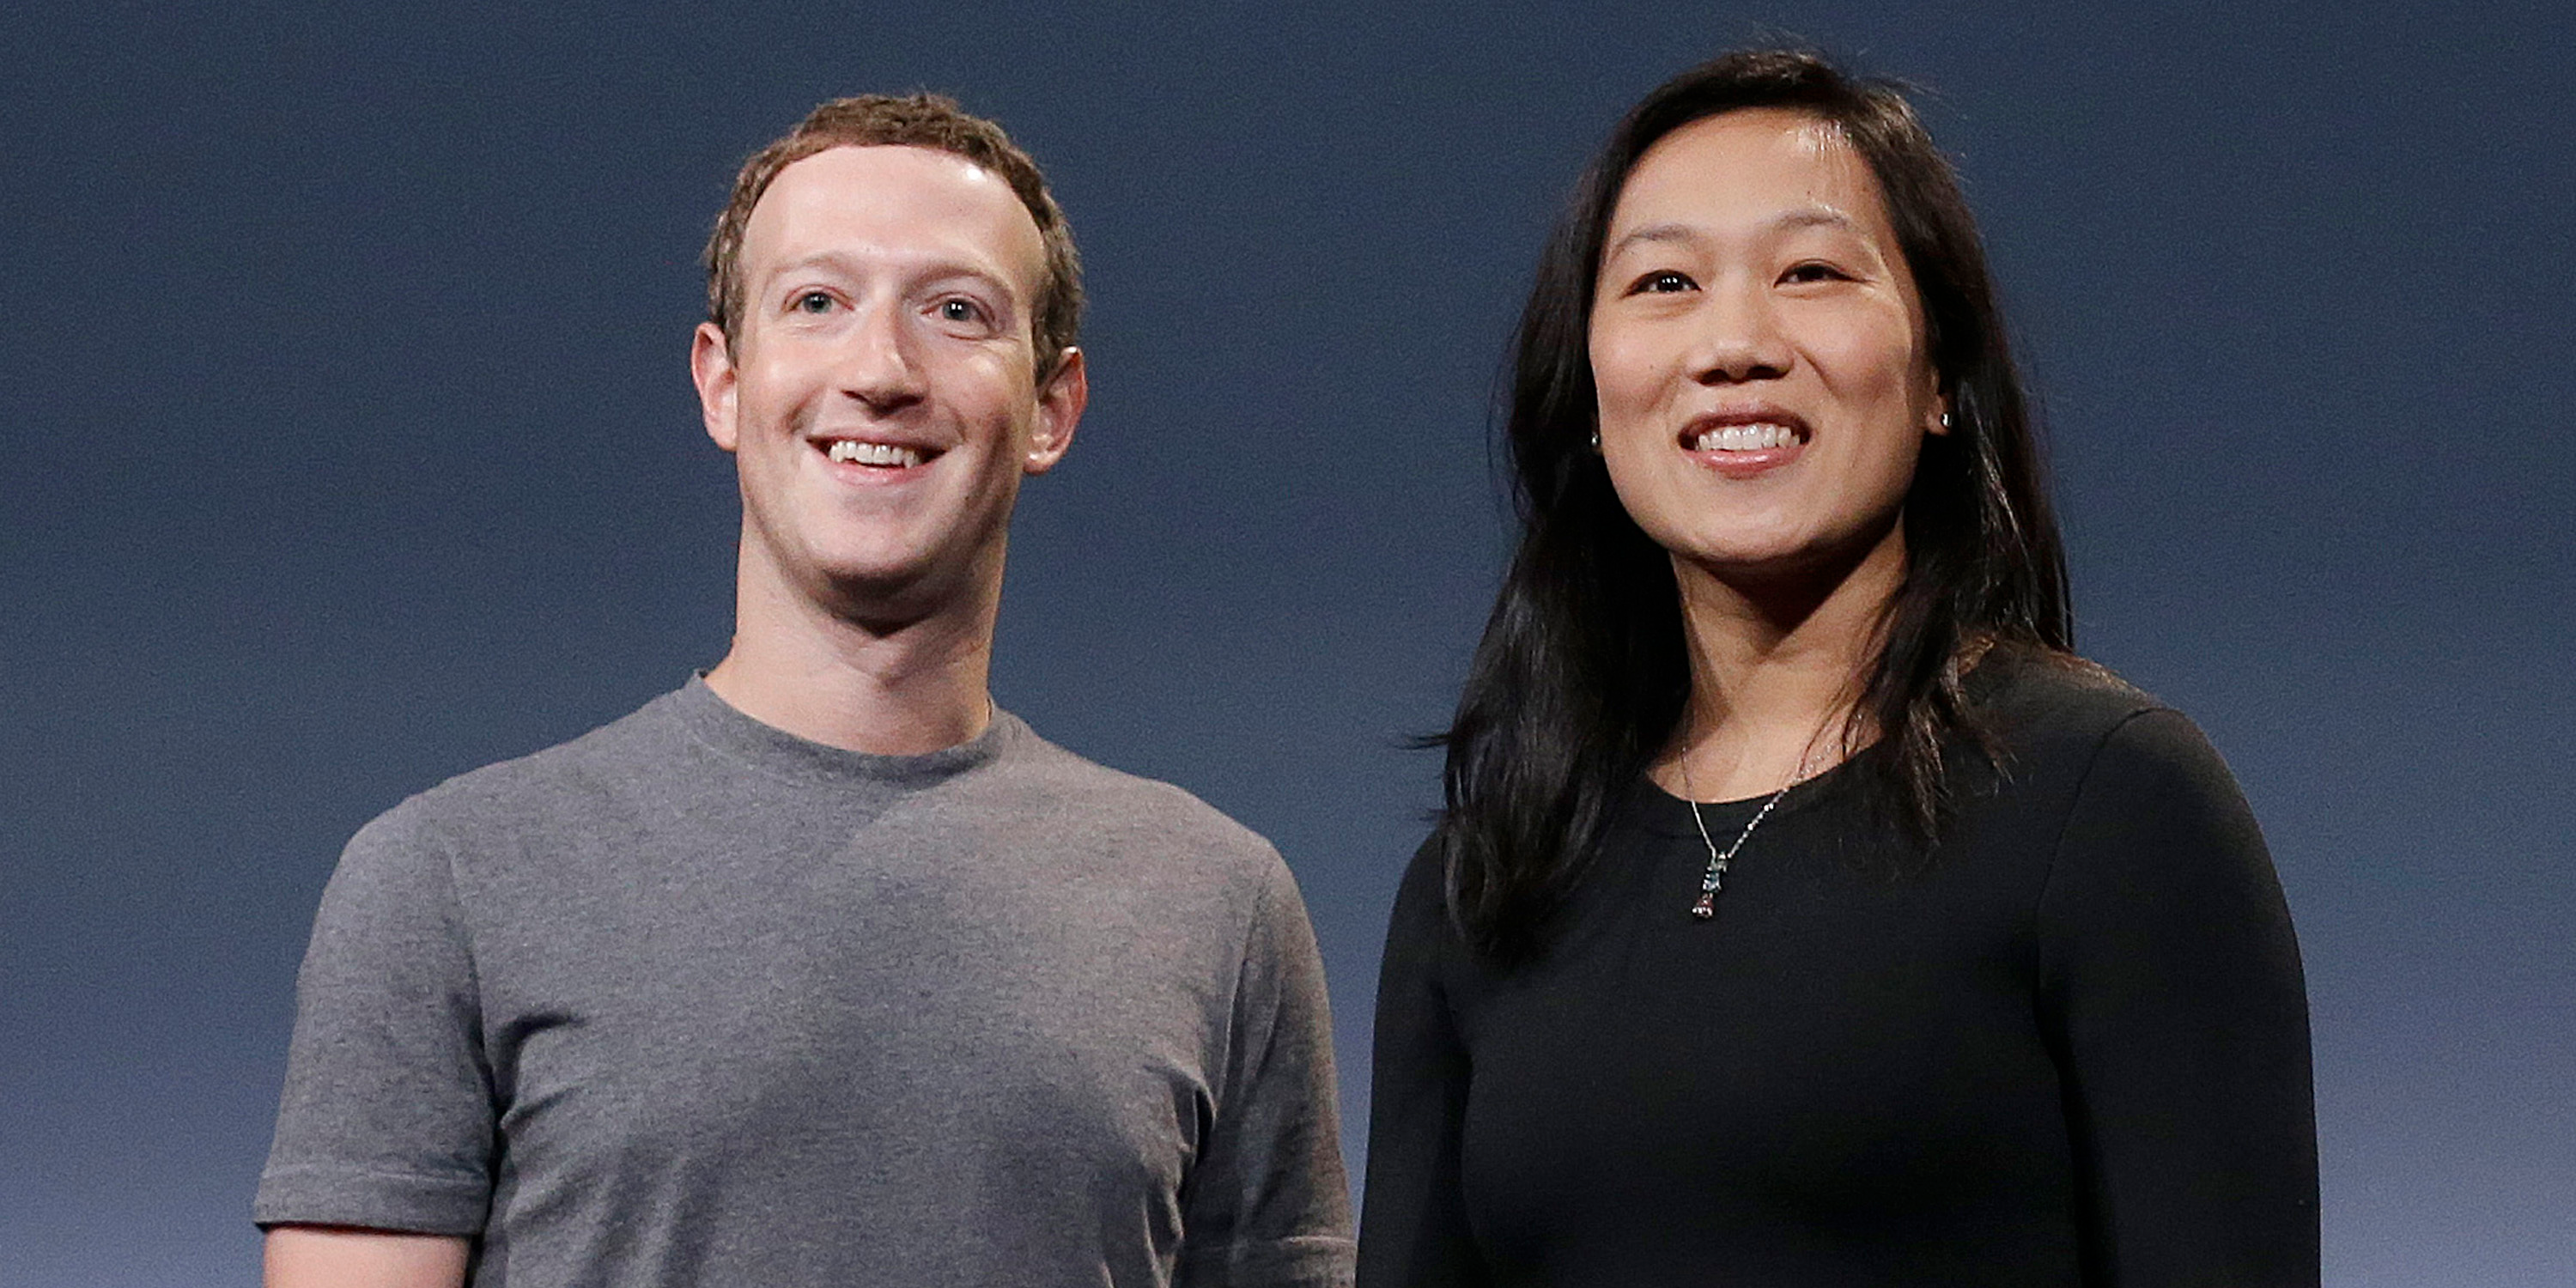 An employee at the Zuckerberg Chan Initiative tested positive for coronavirus